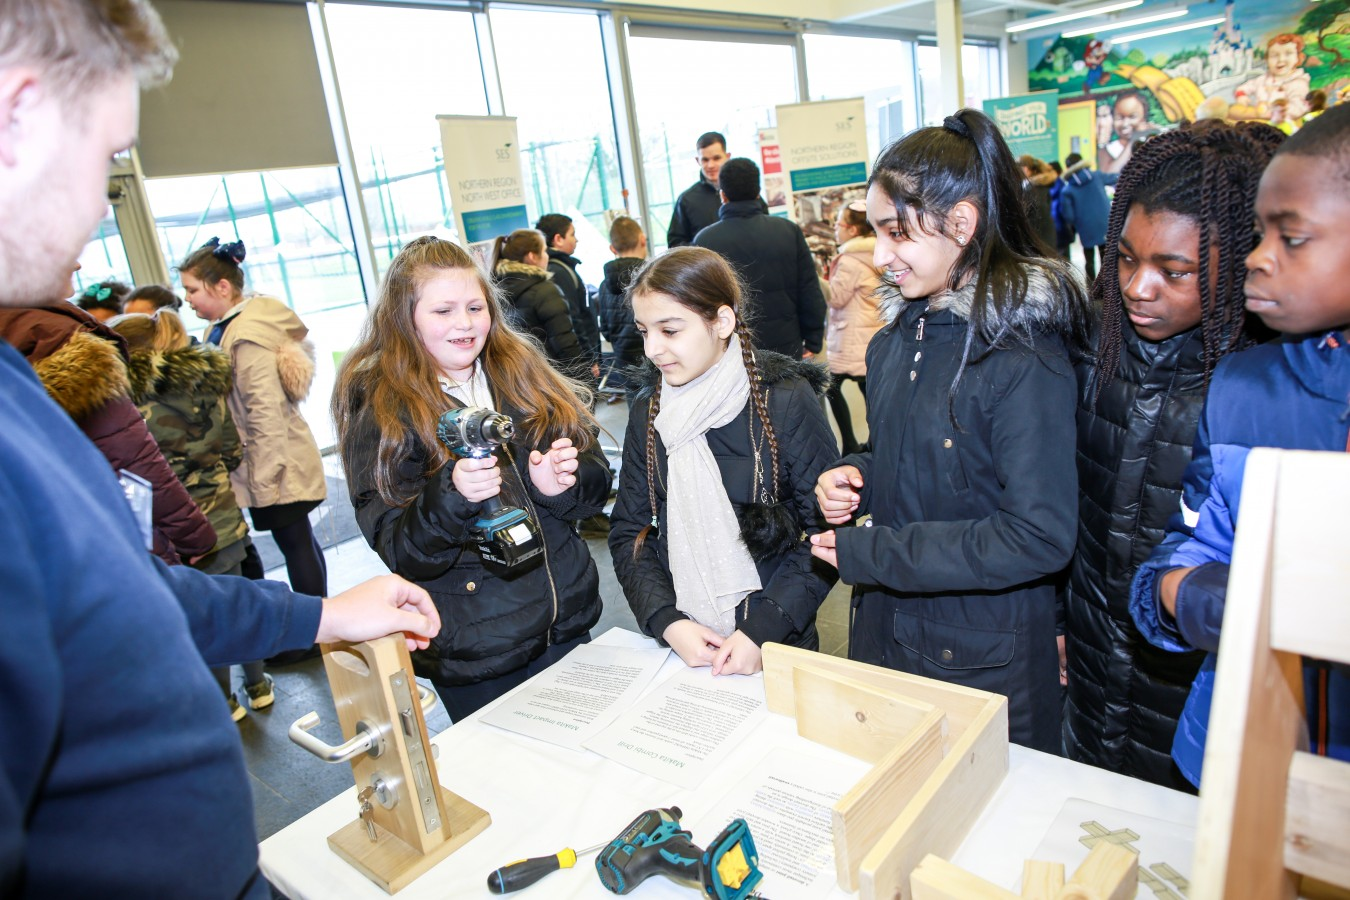 North West Construction Hub 'Have a Go' Day